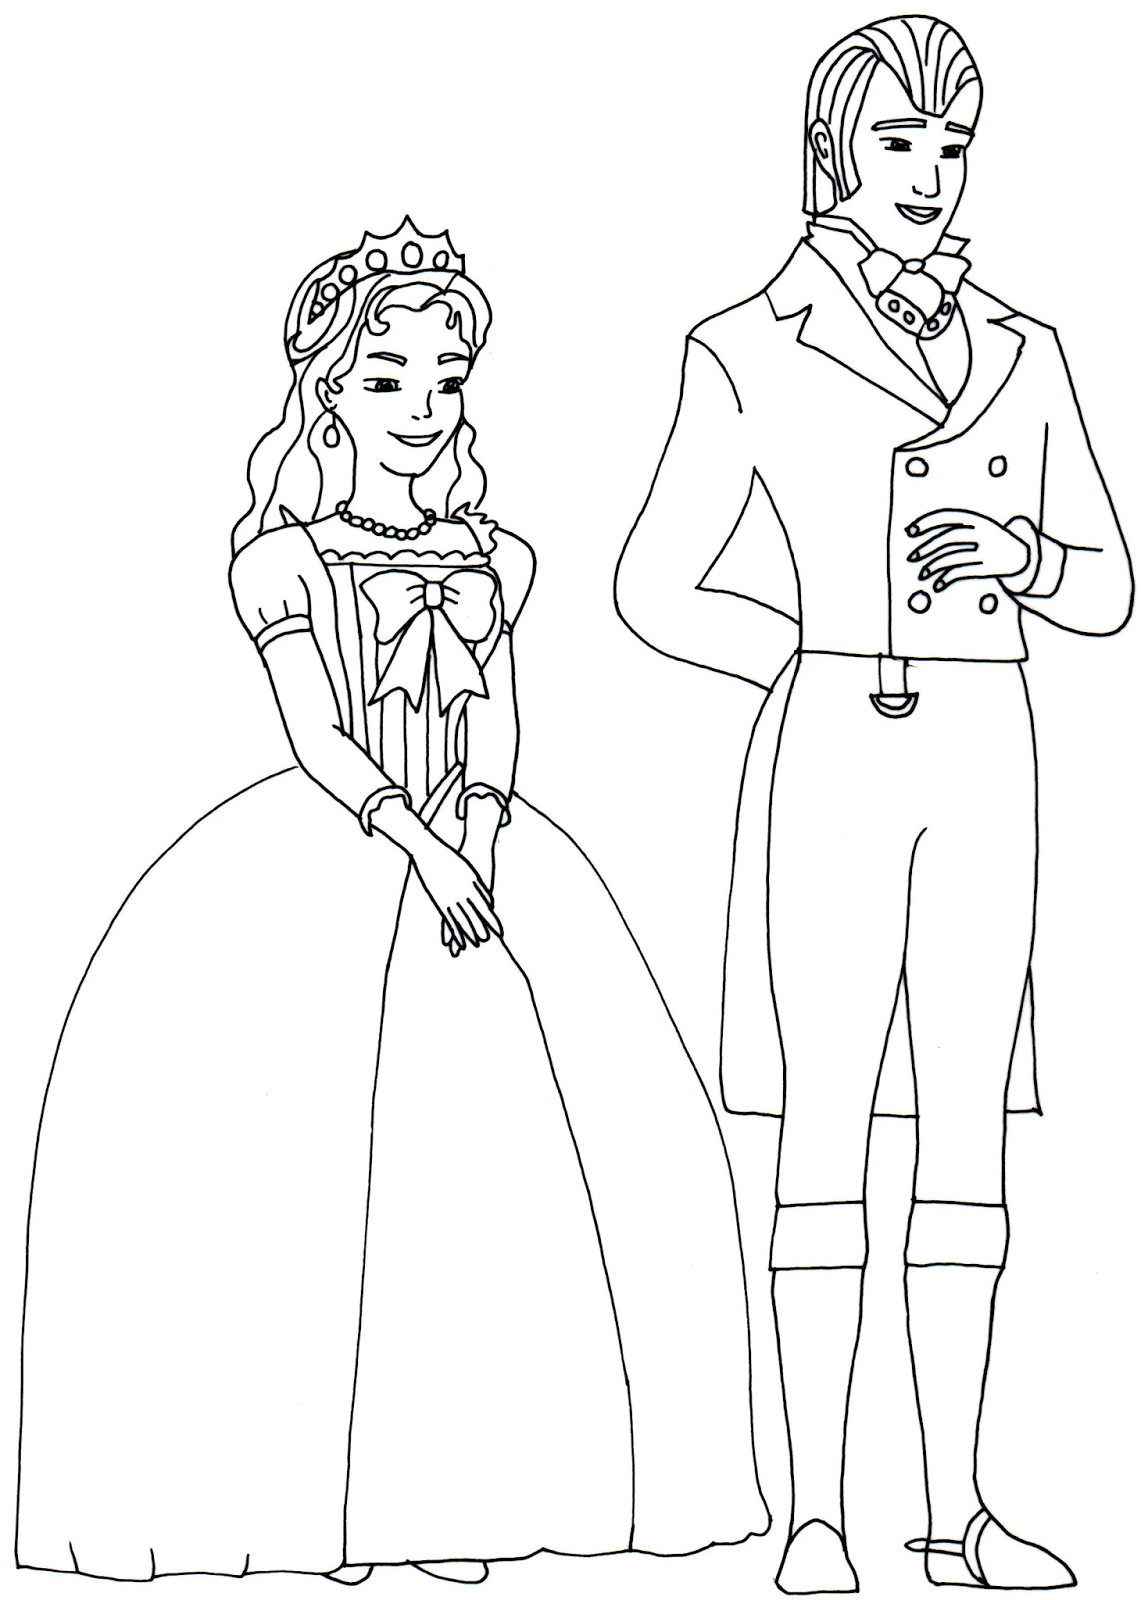 Sofia The First Cedric Google Search Disney Princess Coloring Pages Disney Coloring Pages Printables Coloring Pages